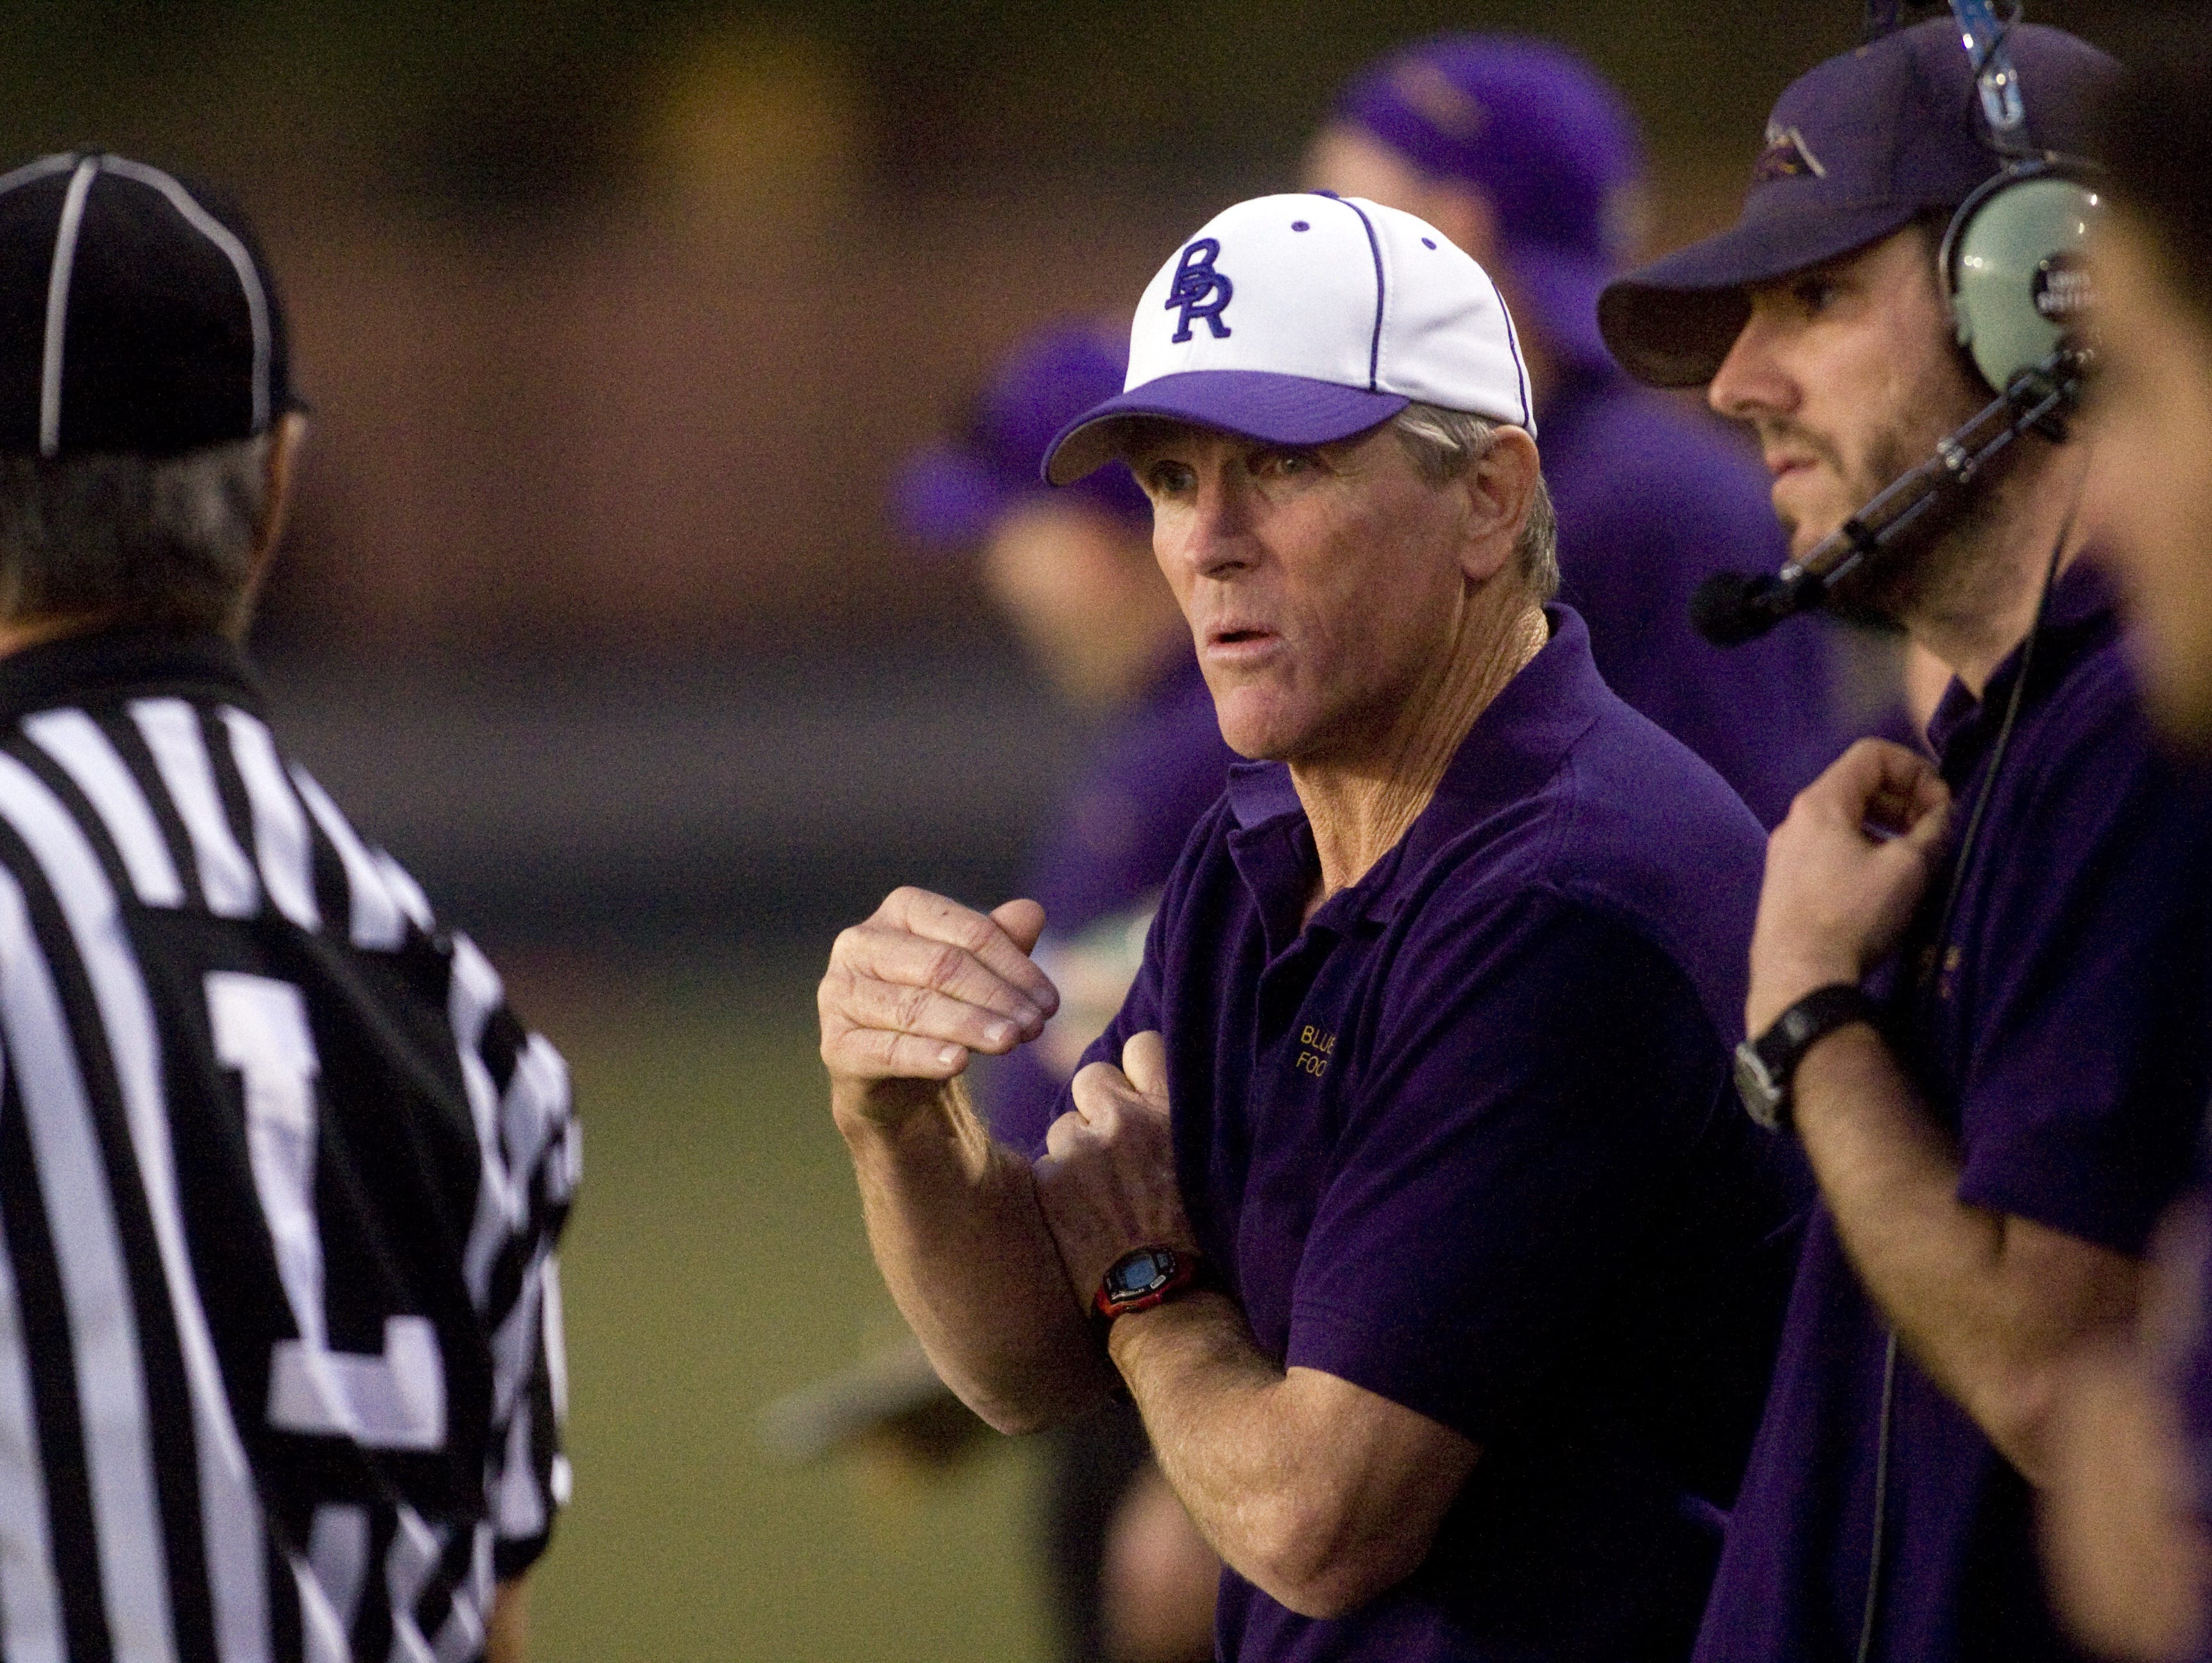 Moro won 318 games and 13 state championships during his 30-year career at Blue Ridge, before leading Poston Butte to a 7-4 record and a Division II state playoff berth in his first season last year.